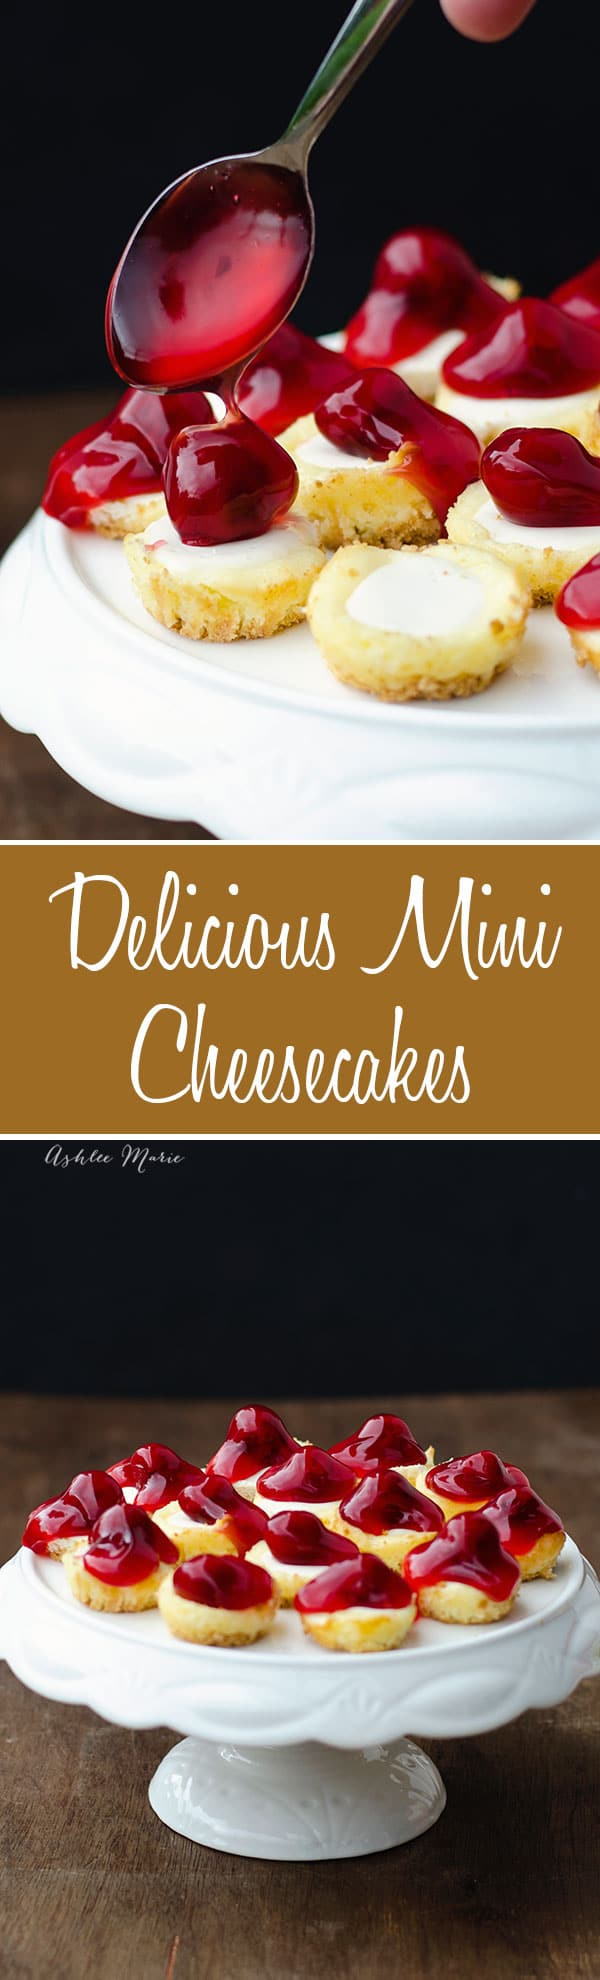 mini cheesecakes are easy to make and are little bite sized pieces of heaven, they are great to serve at a party and are super easy to bake